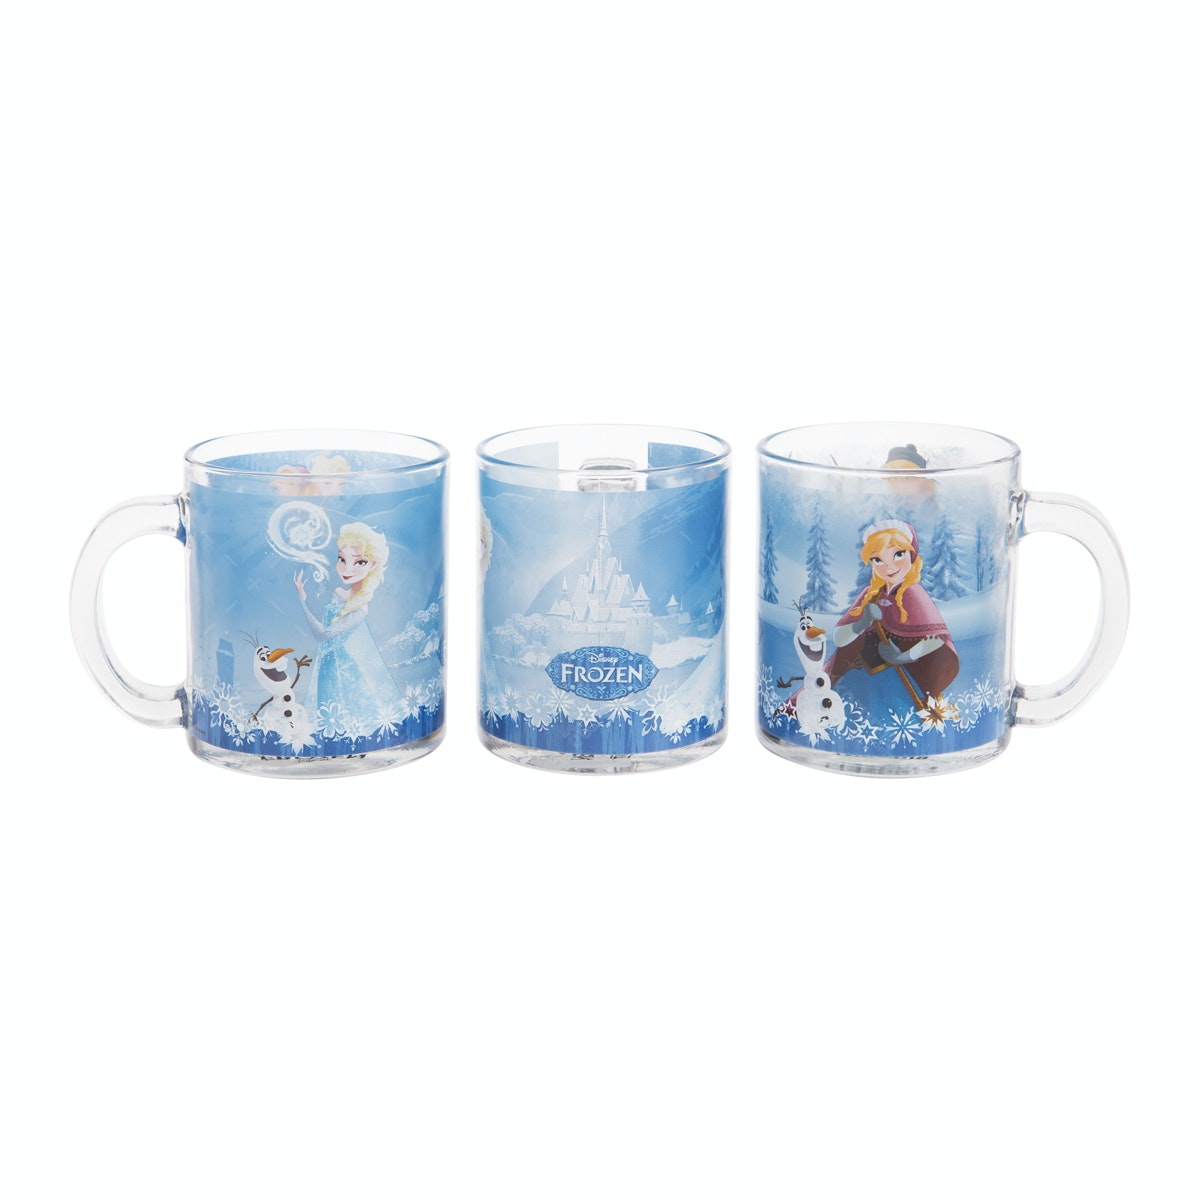 Brilliant Glass Mug Frozen GMC3600 - 3 pcs